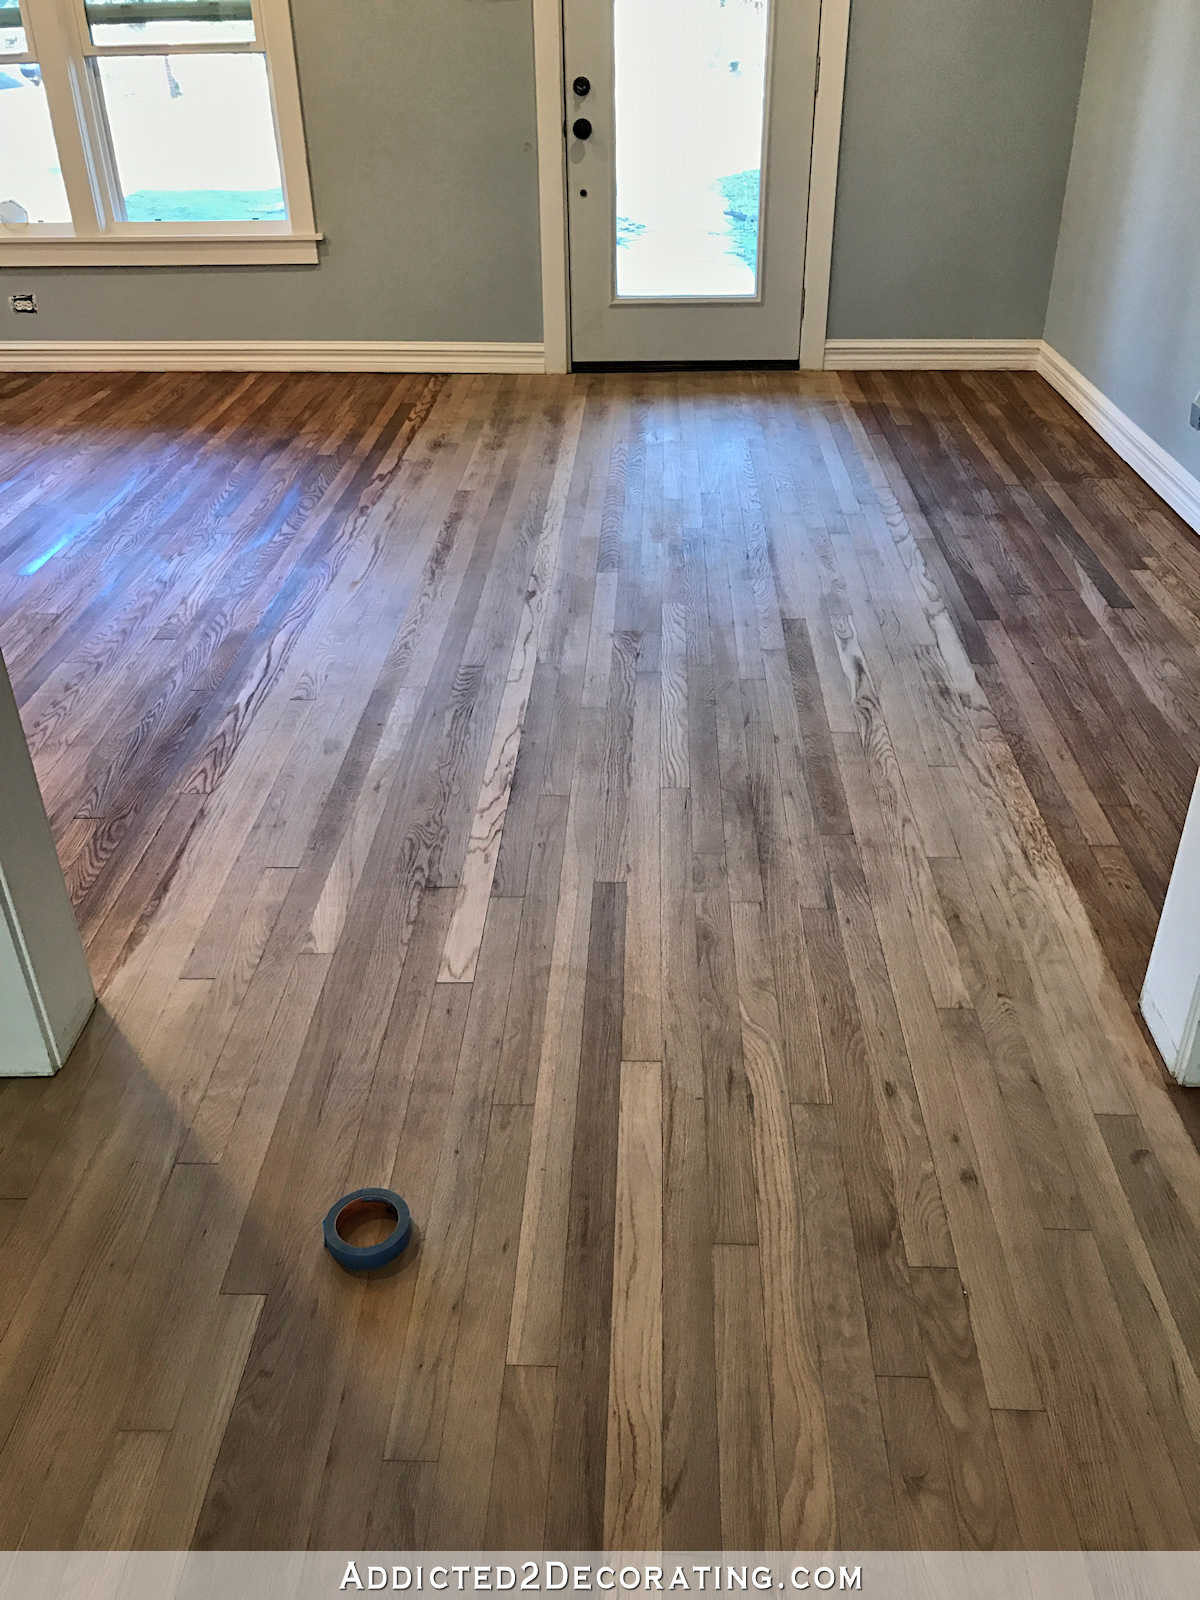 cost to sand and stain hardwood floors of adventures in staining my red oak hardwood floors products process regarding staining red oak hardwood floors 4 entryway and living room wood conditioner